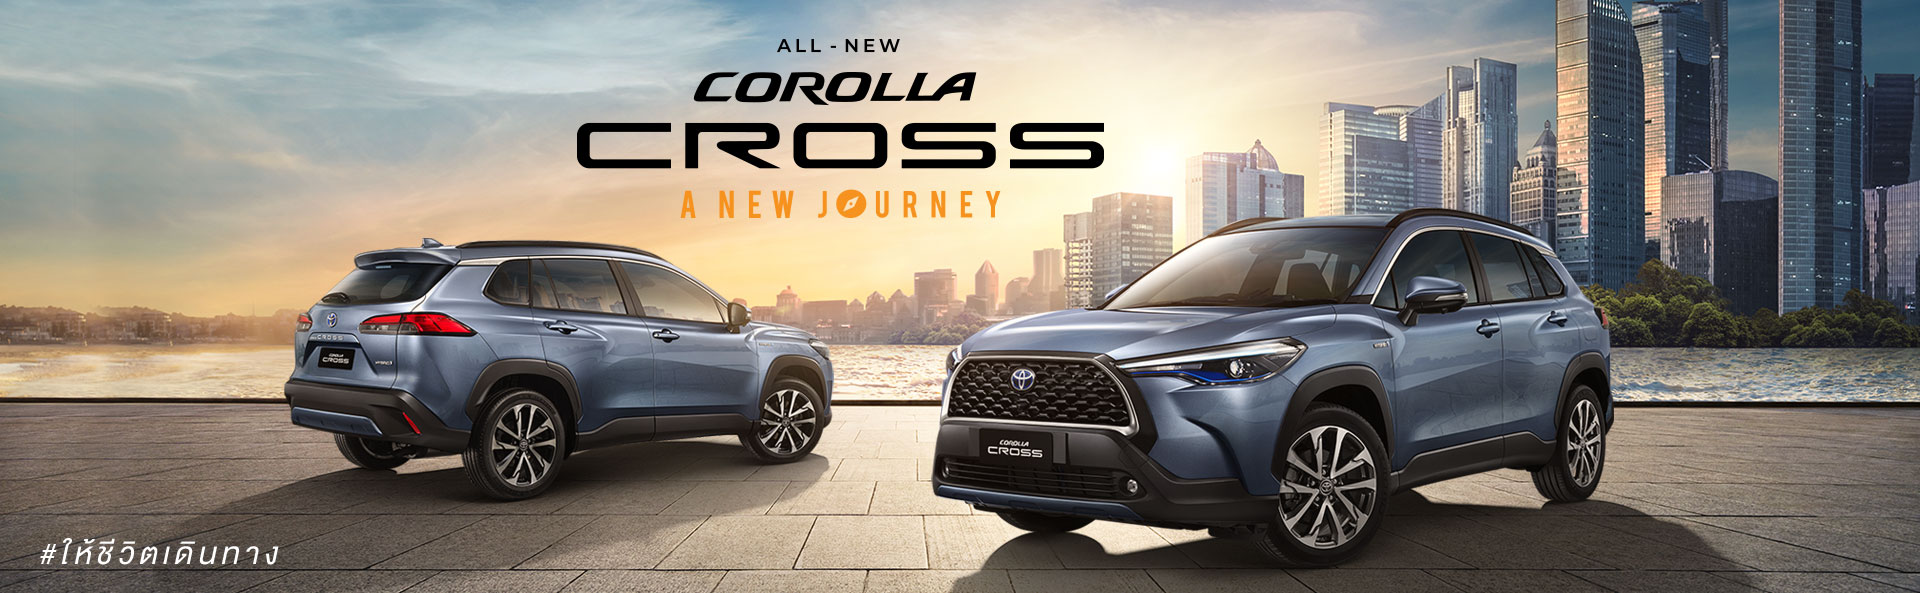 Toyota Corolla Cross Remains the Bestselling Car in Thailand 2